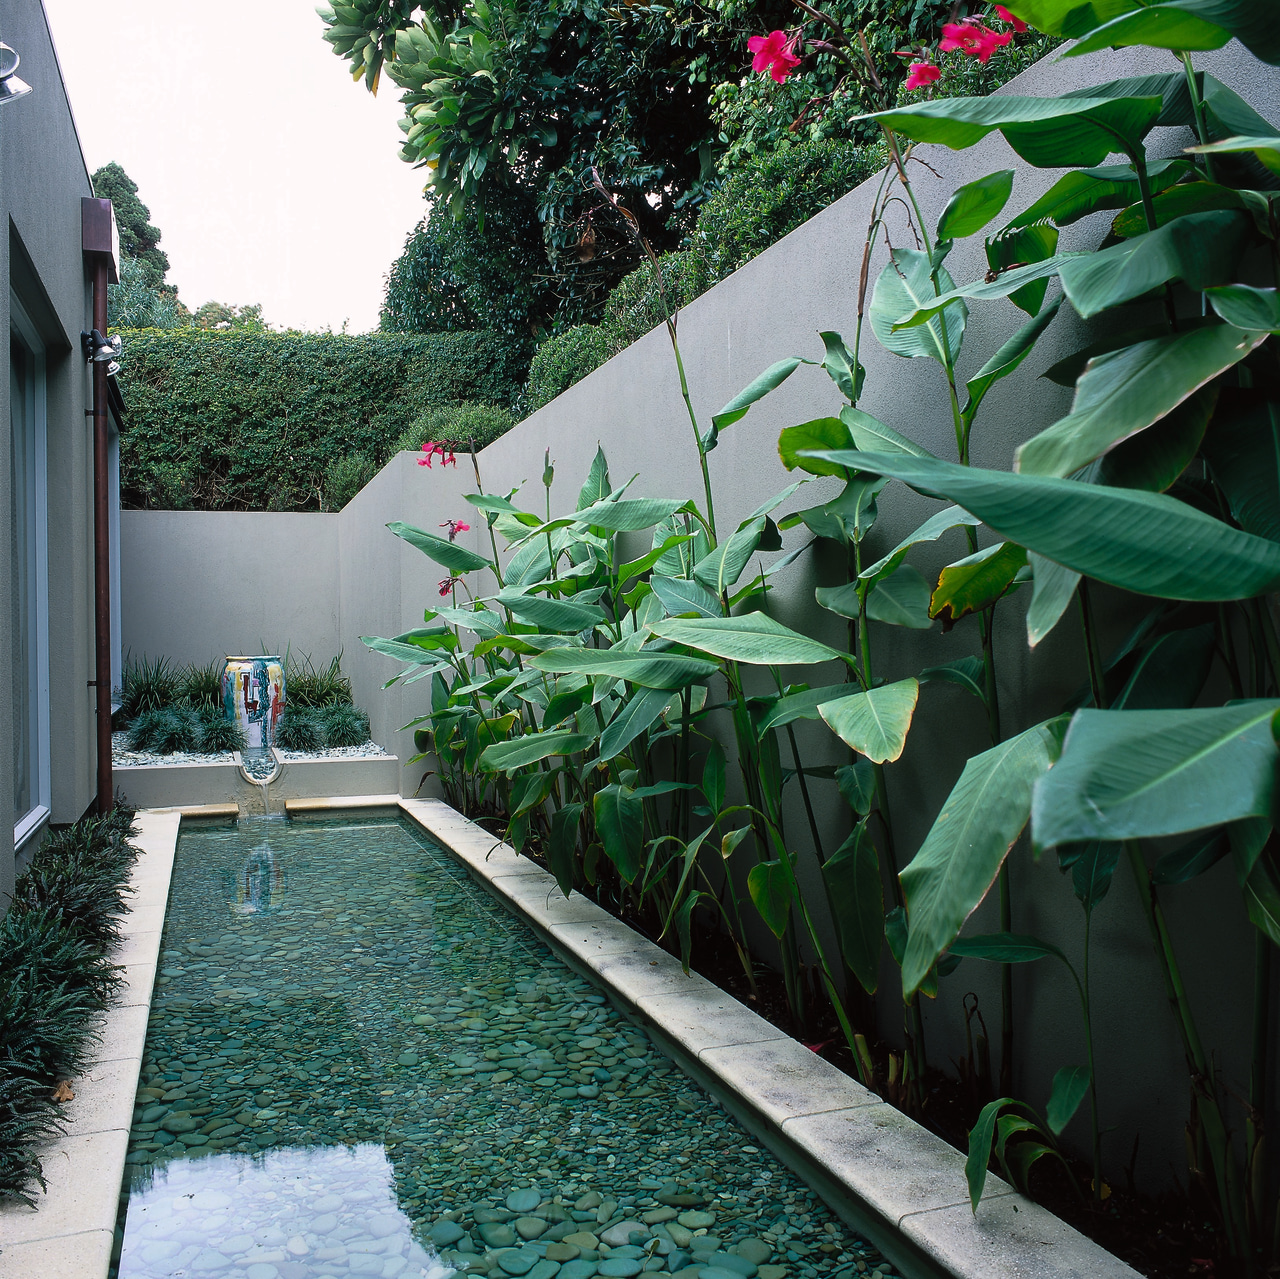 outdoor lap pool, garden backyard, courtyard, garden, grass, house, leaf, plant, swimming pool, tree, yard, green